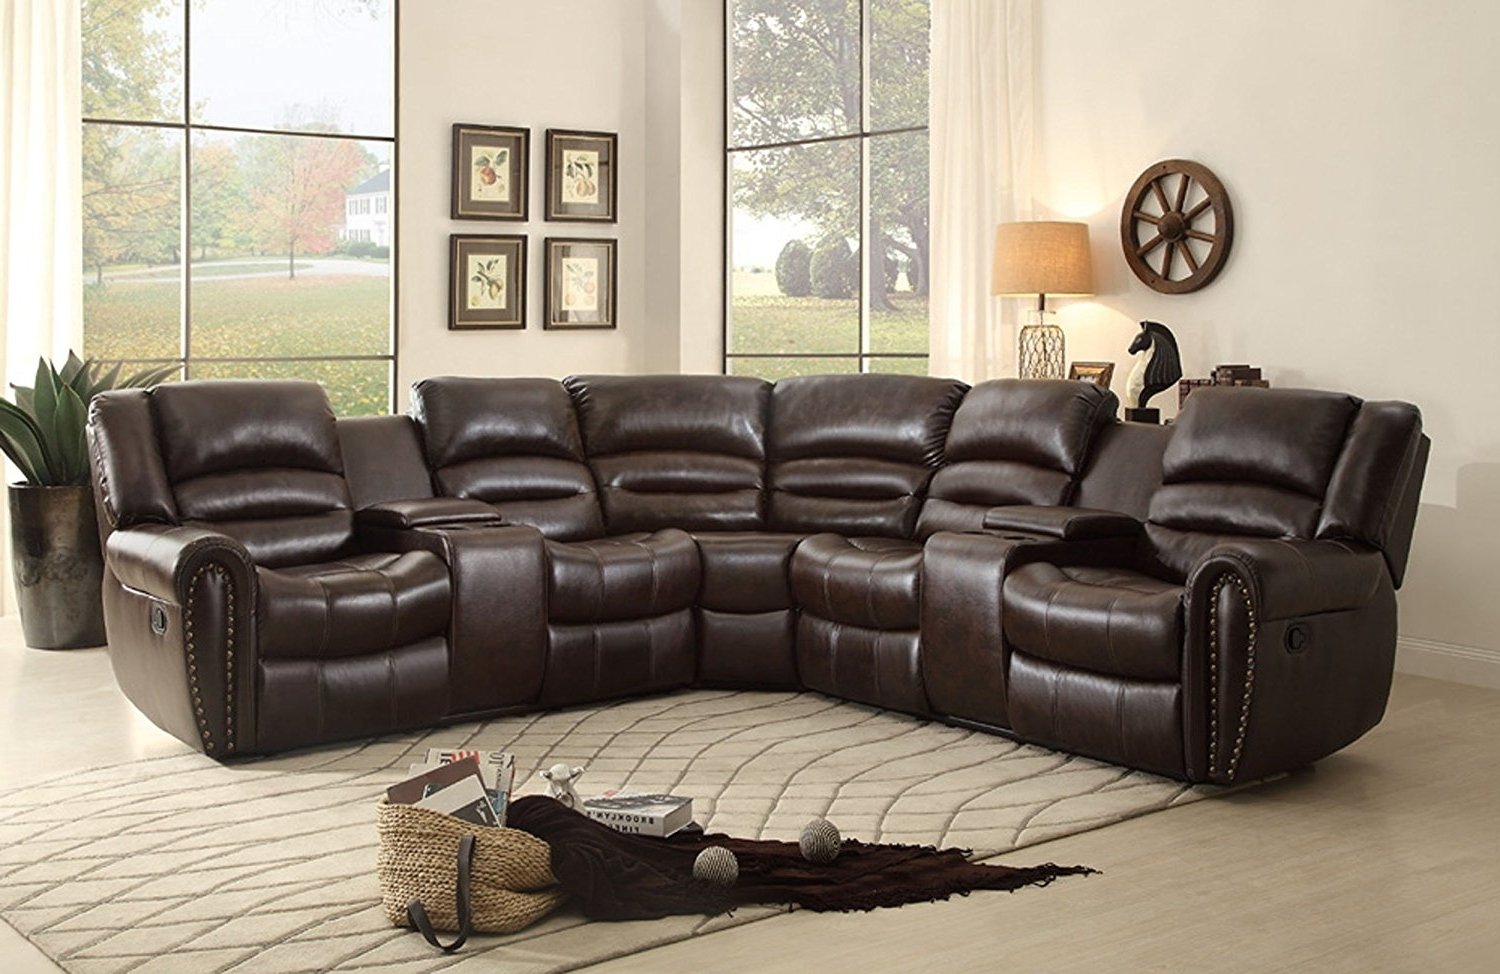 Latest Sectional Sofas With Cup Holders Regarding Sofa : Small Leather Sectional Sofa With Recliner Leather Recliner (View 4 of 20)